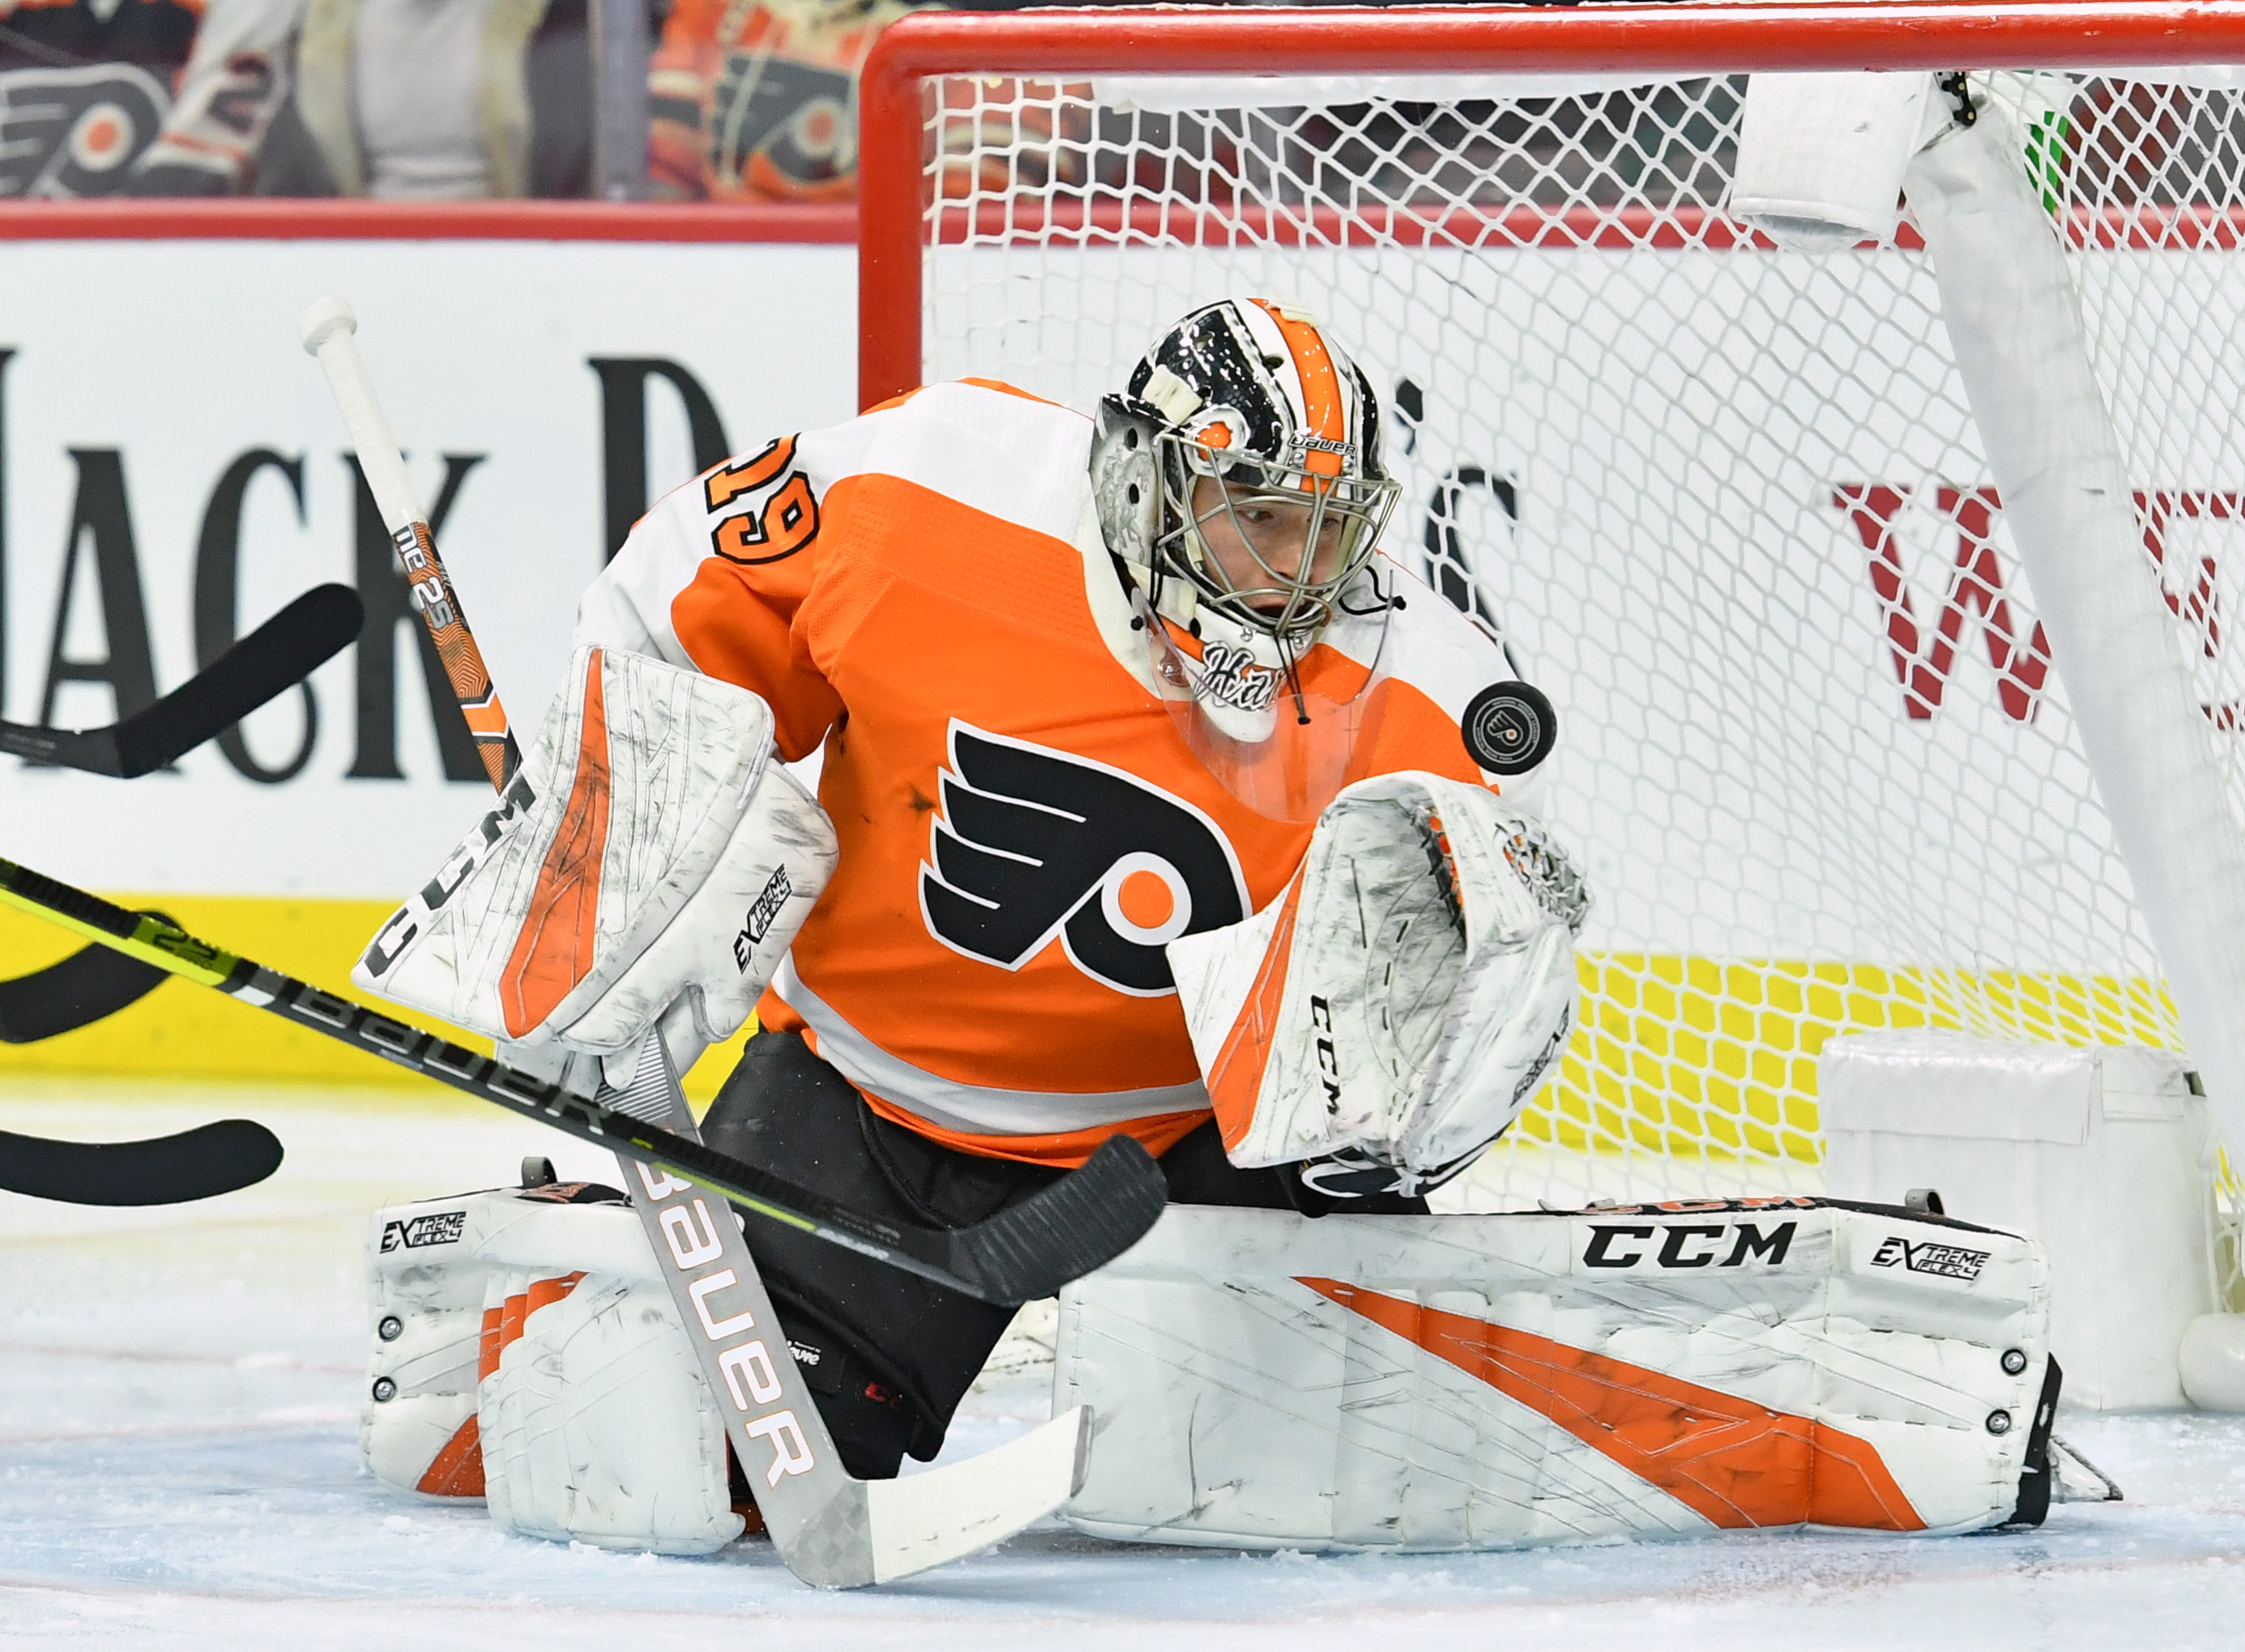 Watch: Flyers' Goalie Carter Hart's Incredible Diving Save